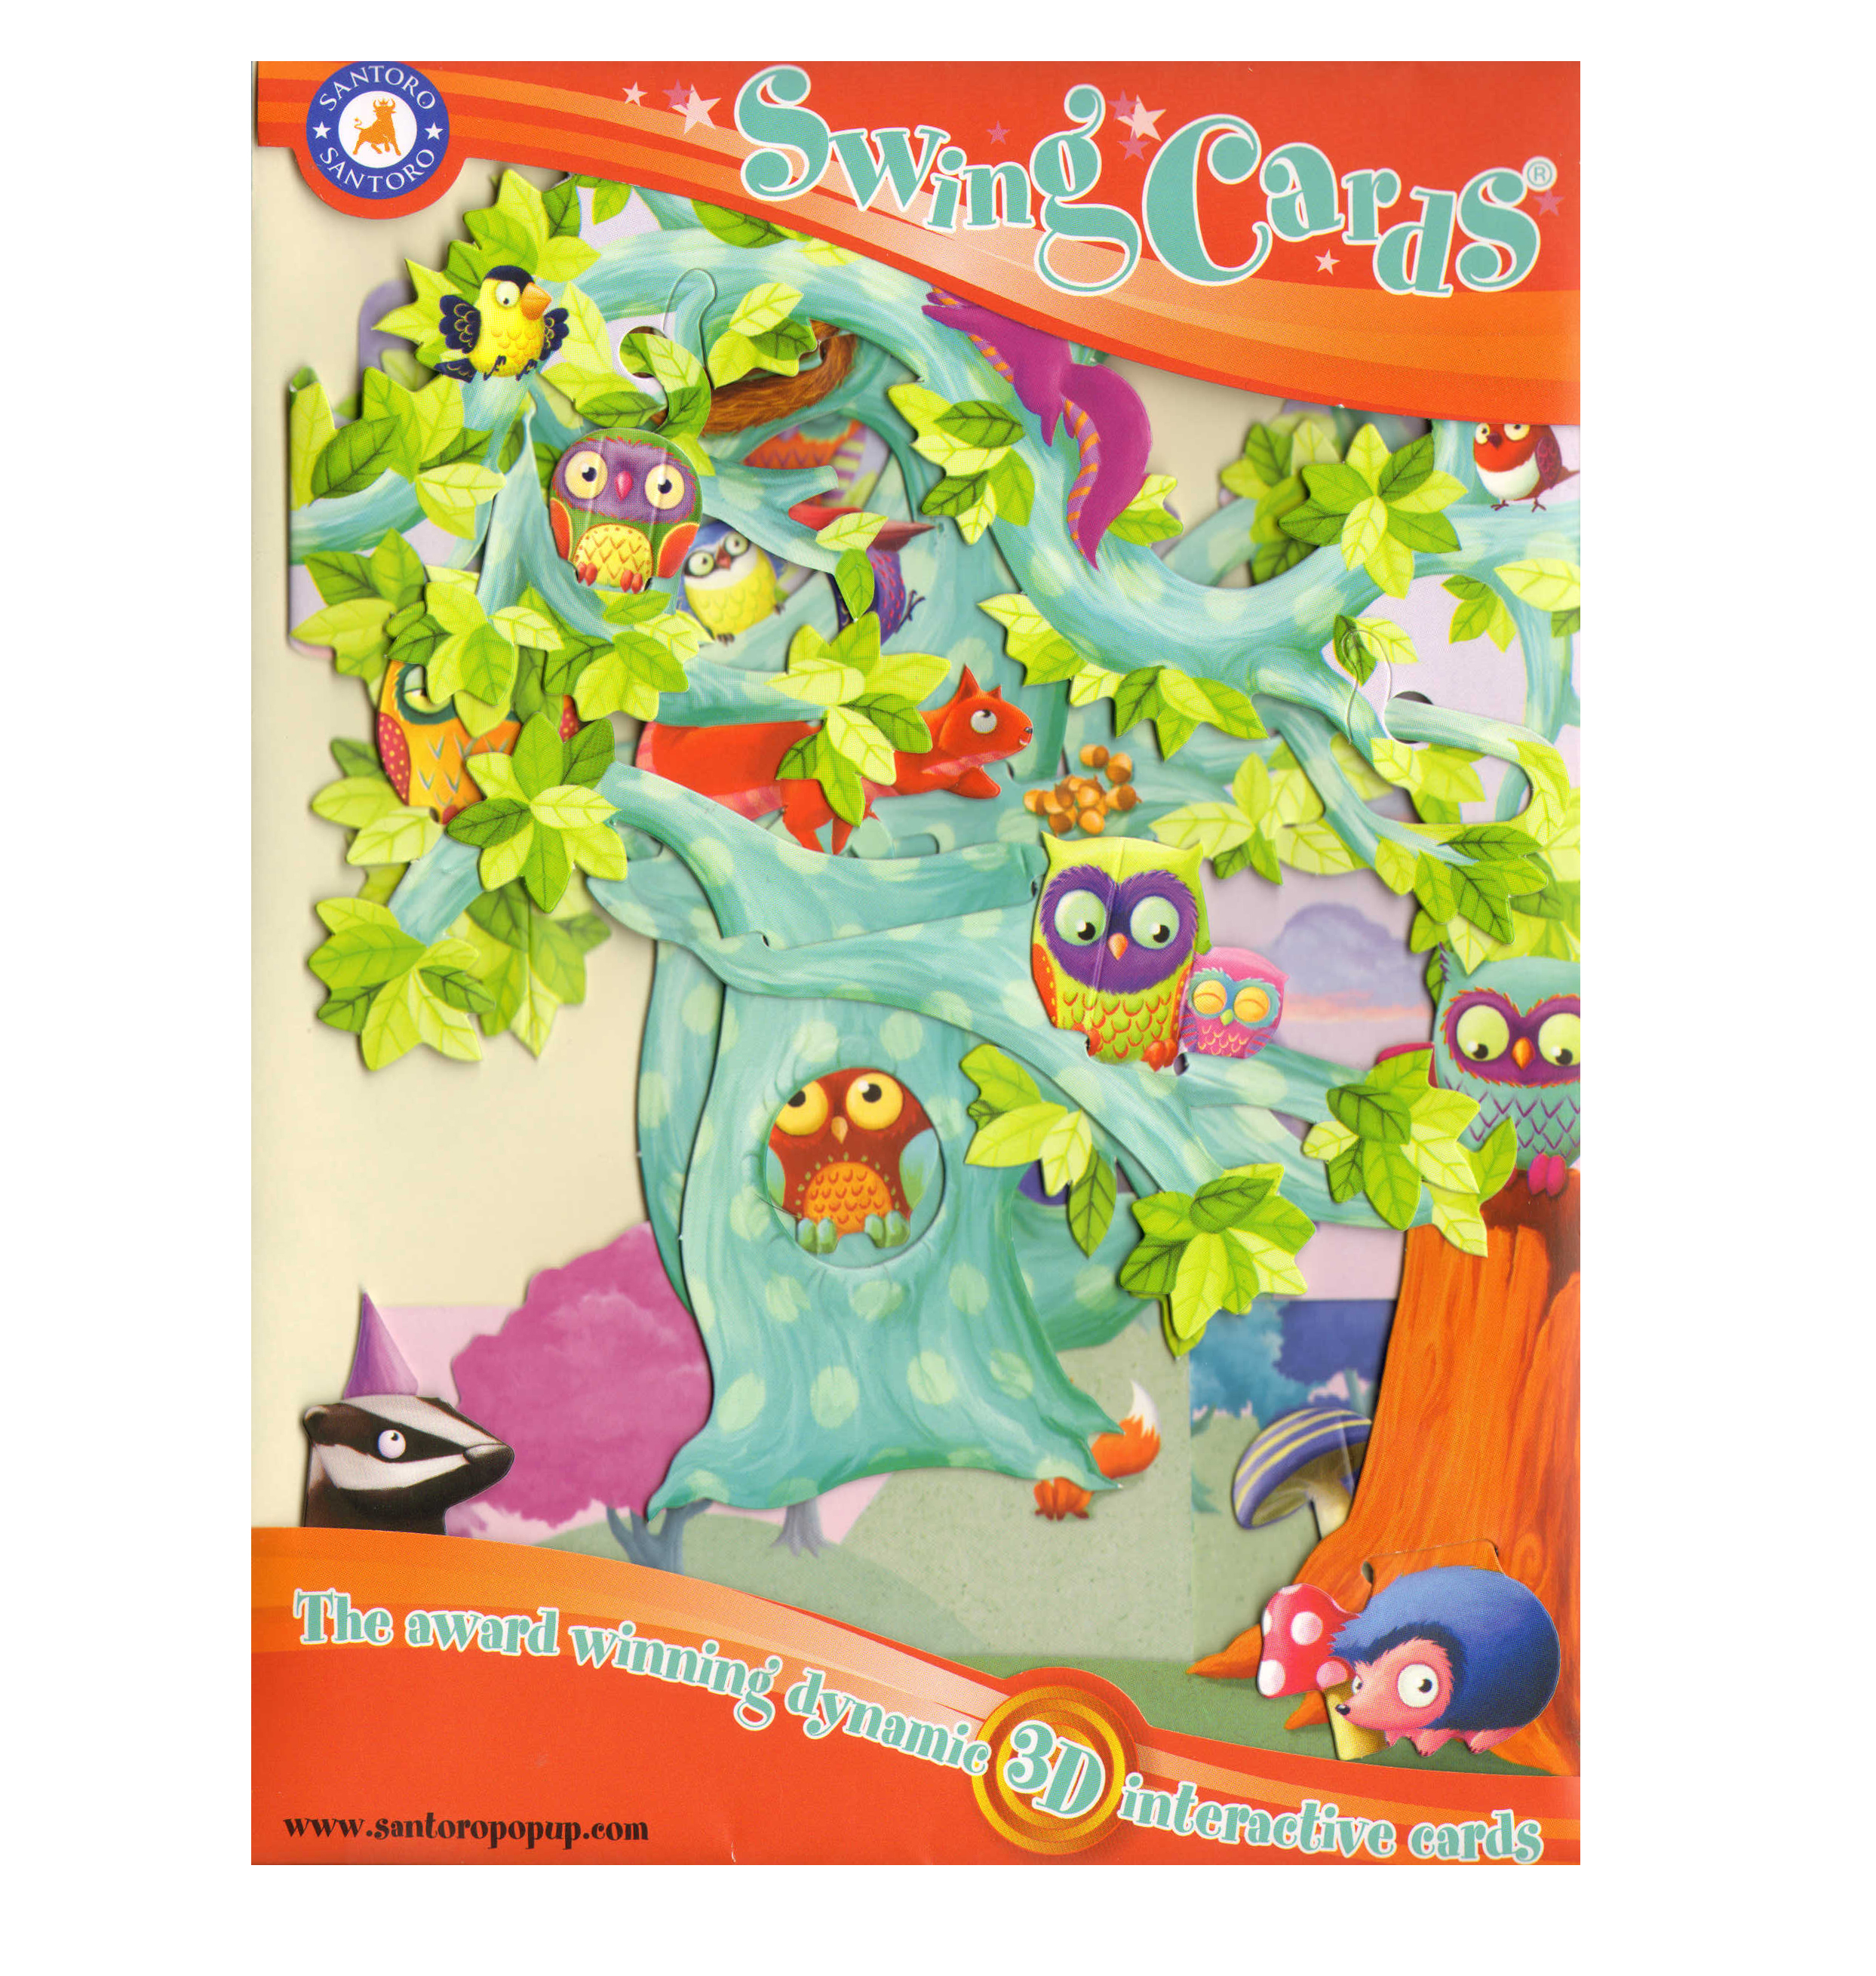 Woodland tree of birds swing card award winning dynamic 3d woodland tree of birds swing card award winning dynamic 3d interactive greetings card kristyandbryce Image collections